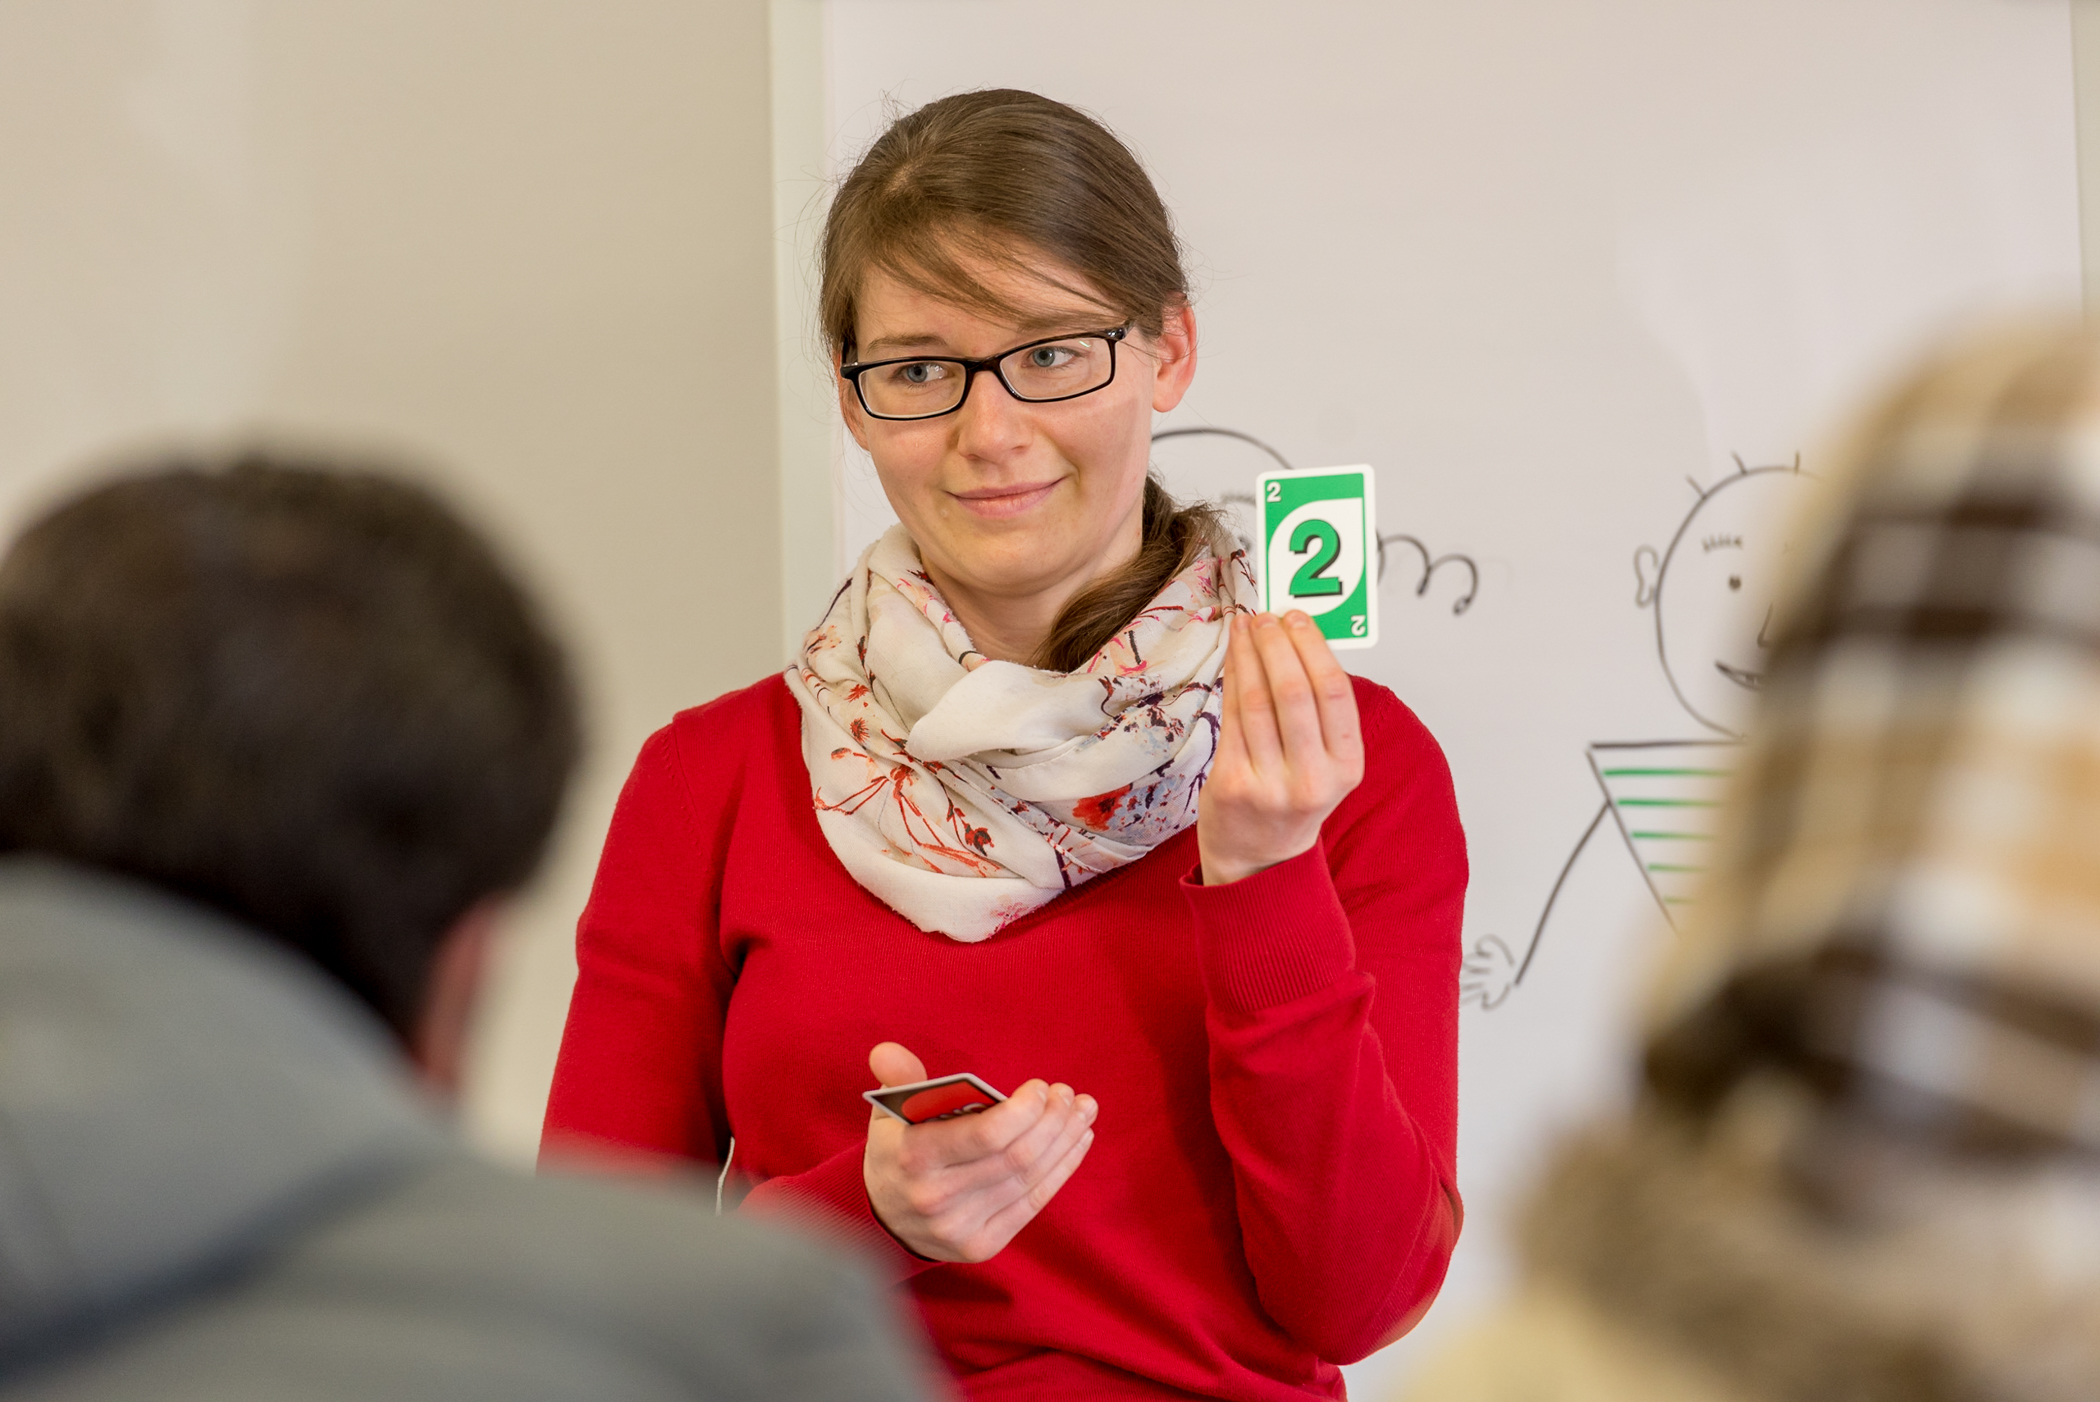 Helene Celiscev presents her sample lesson, using cards from a common game, to a couple of recently-arrived refugees from West Asia. Helene's lesson is meant to teach the words for colors and numbers up to 10. Helene's mother tongue is German [deu]. The German for Refugees course is a train-the-trainer course designed to equip Germans to teach their language to recently arriving refugees.